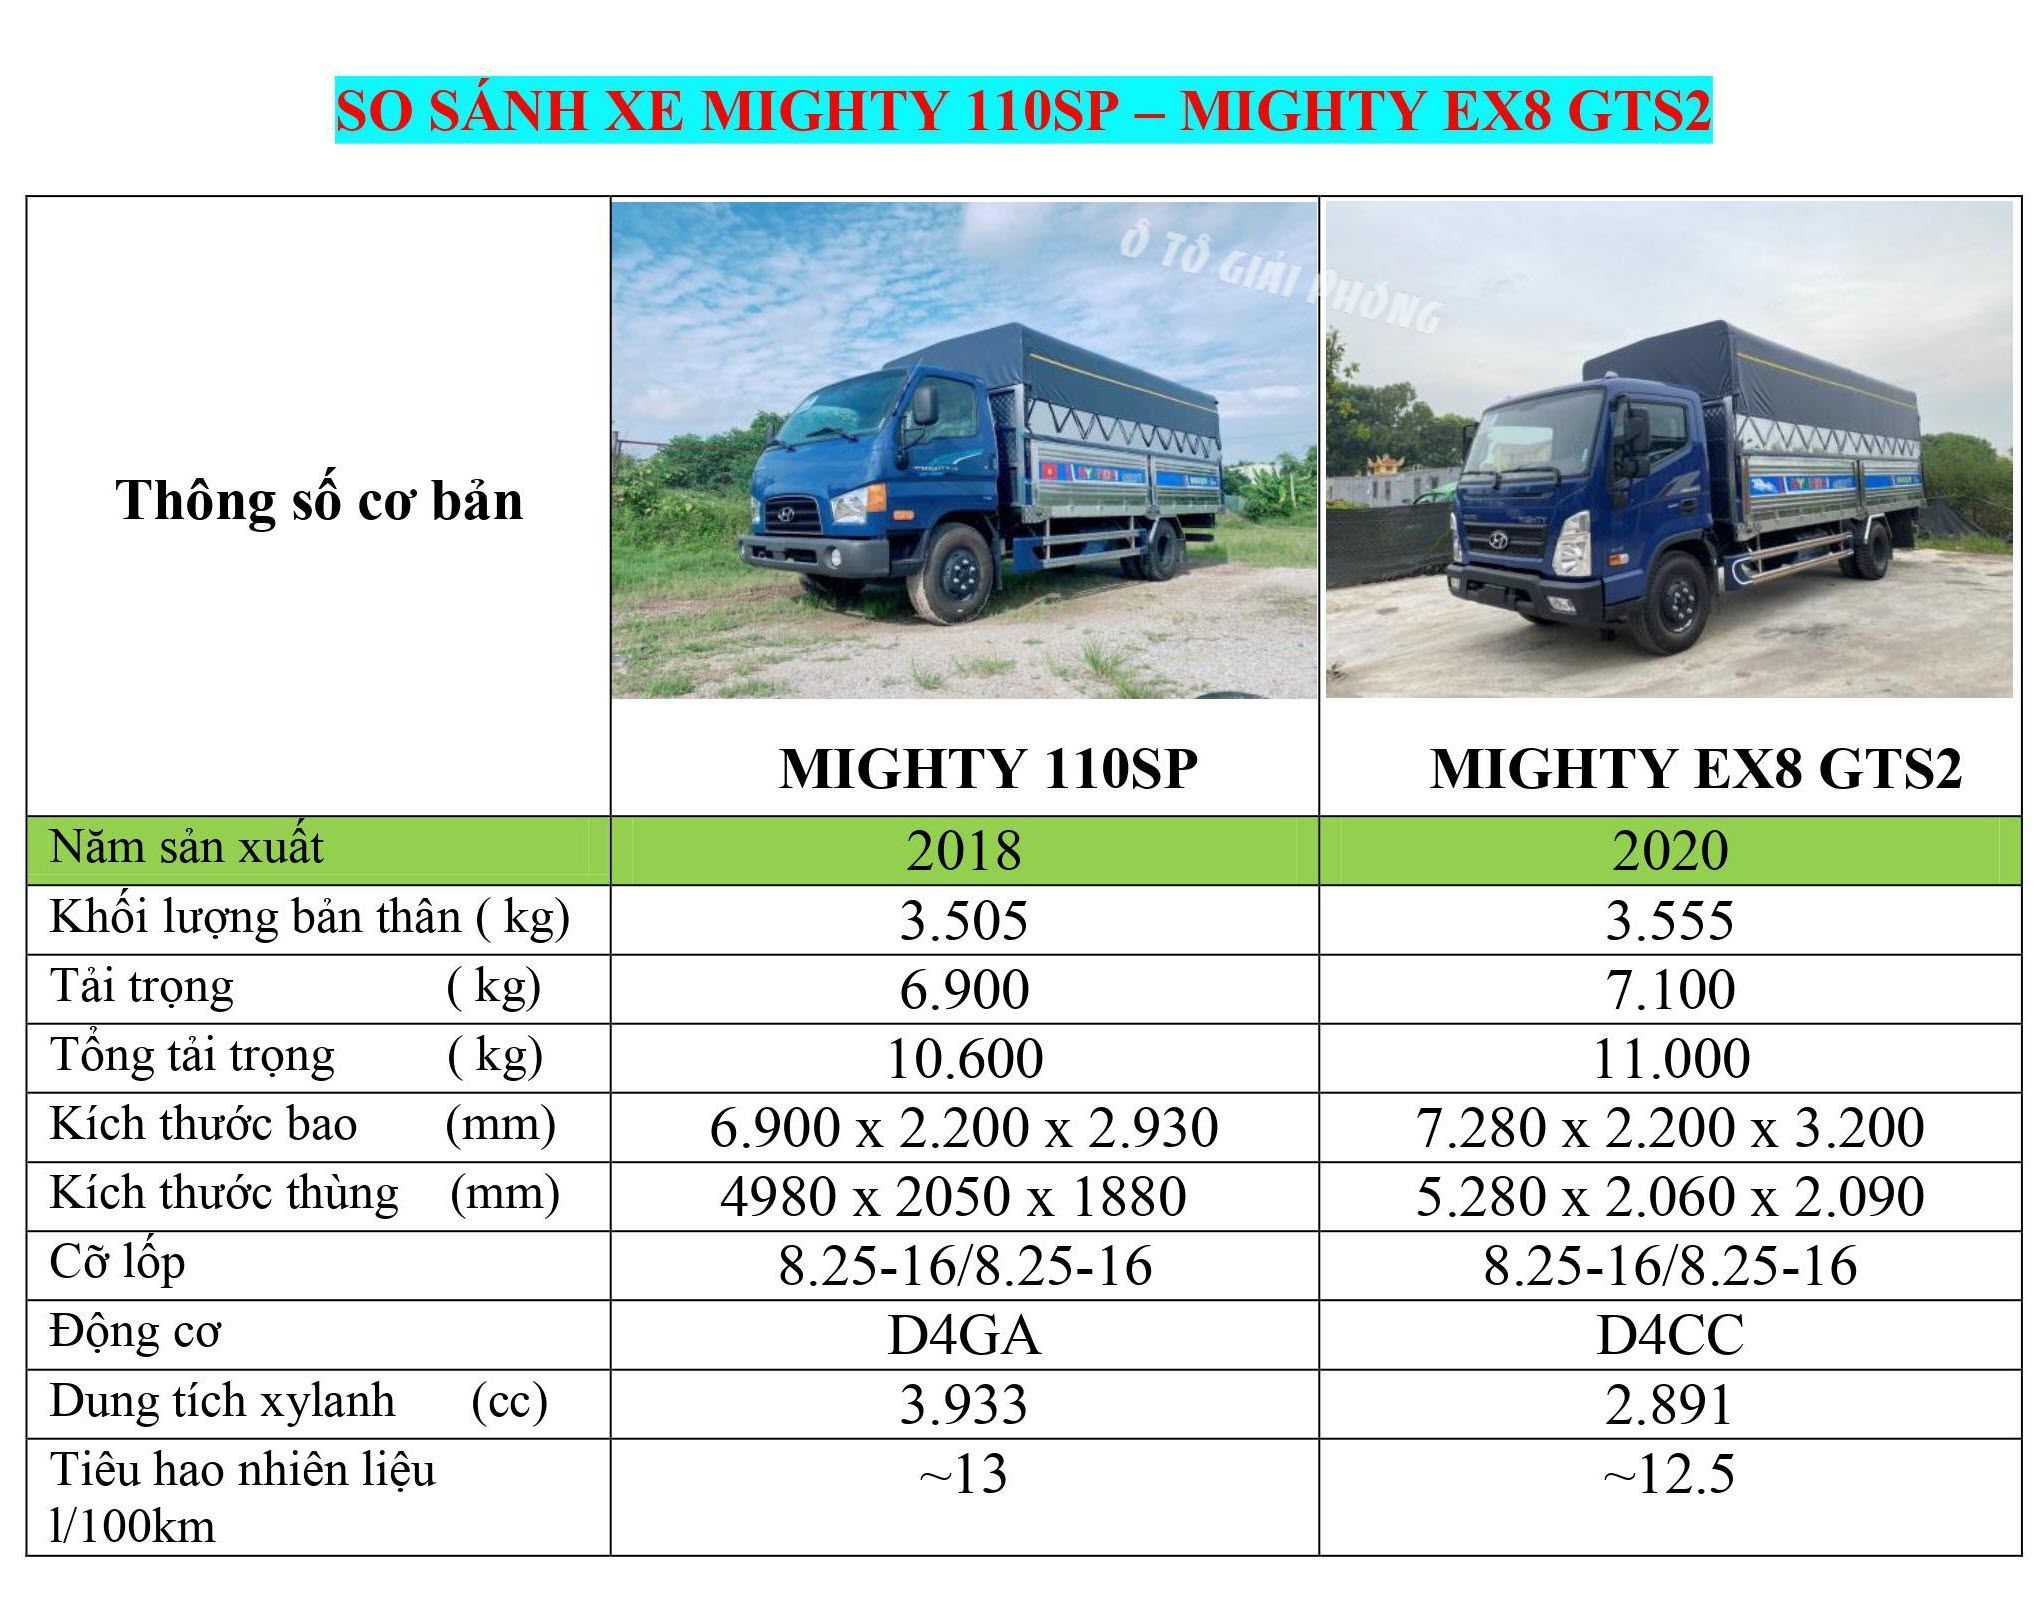 so sánh xe mighty 110sp với mighty ex8 gts2